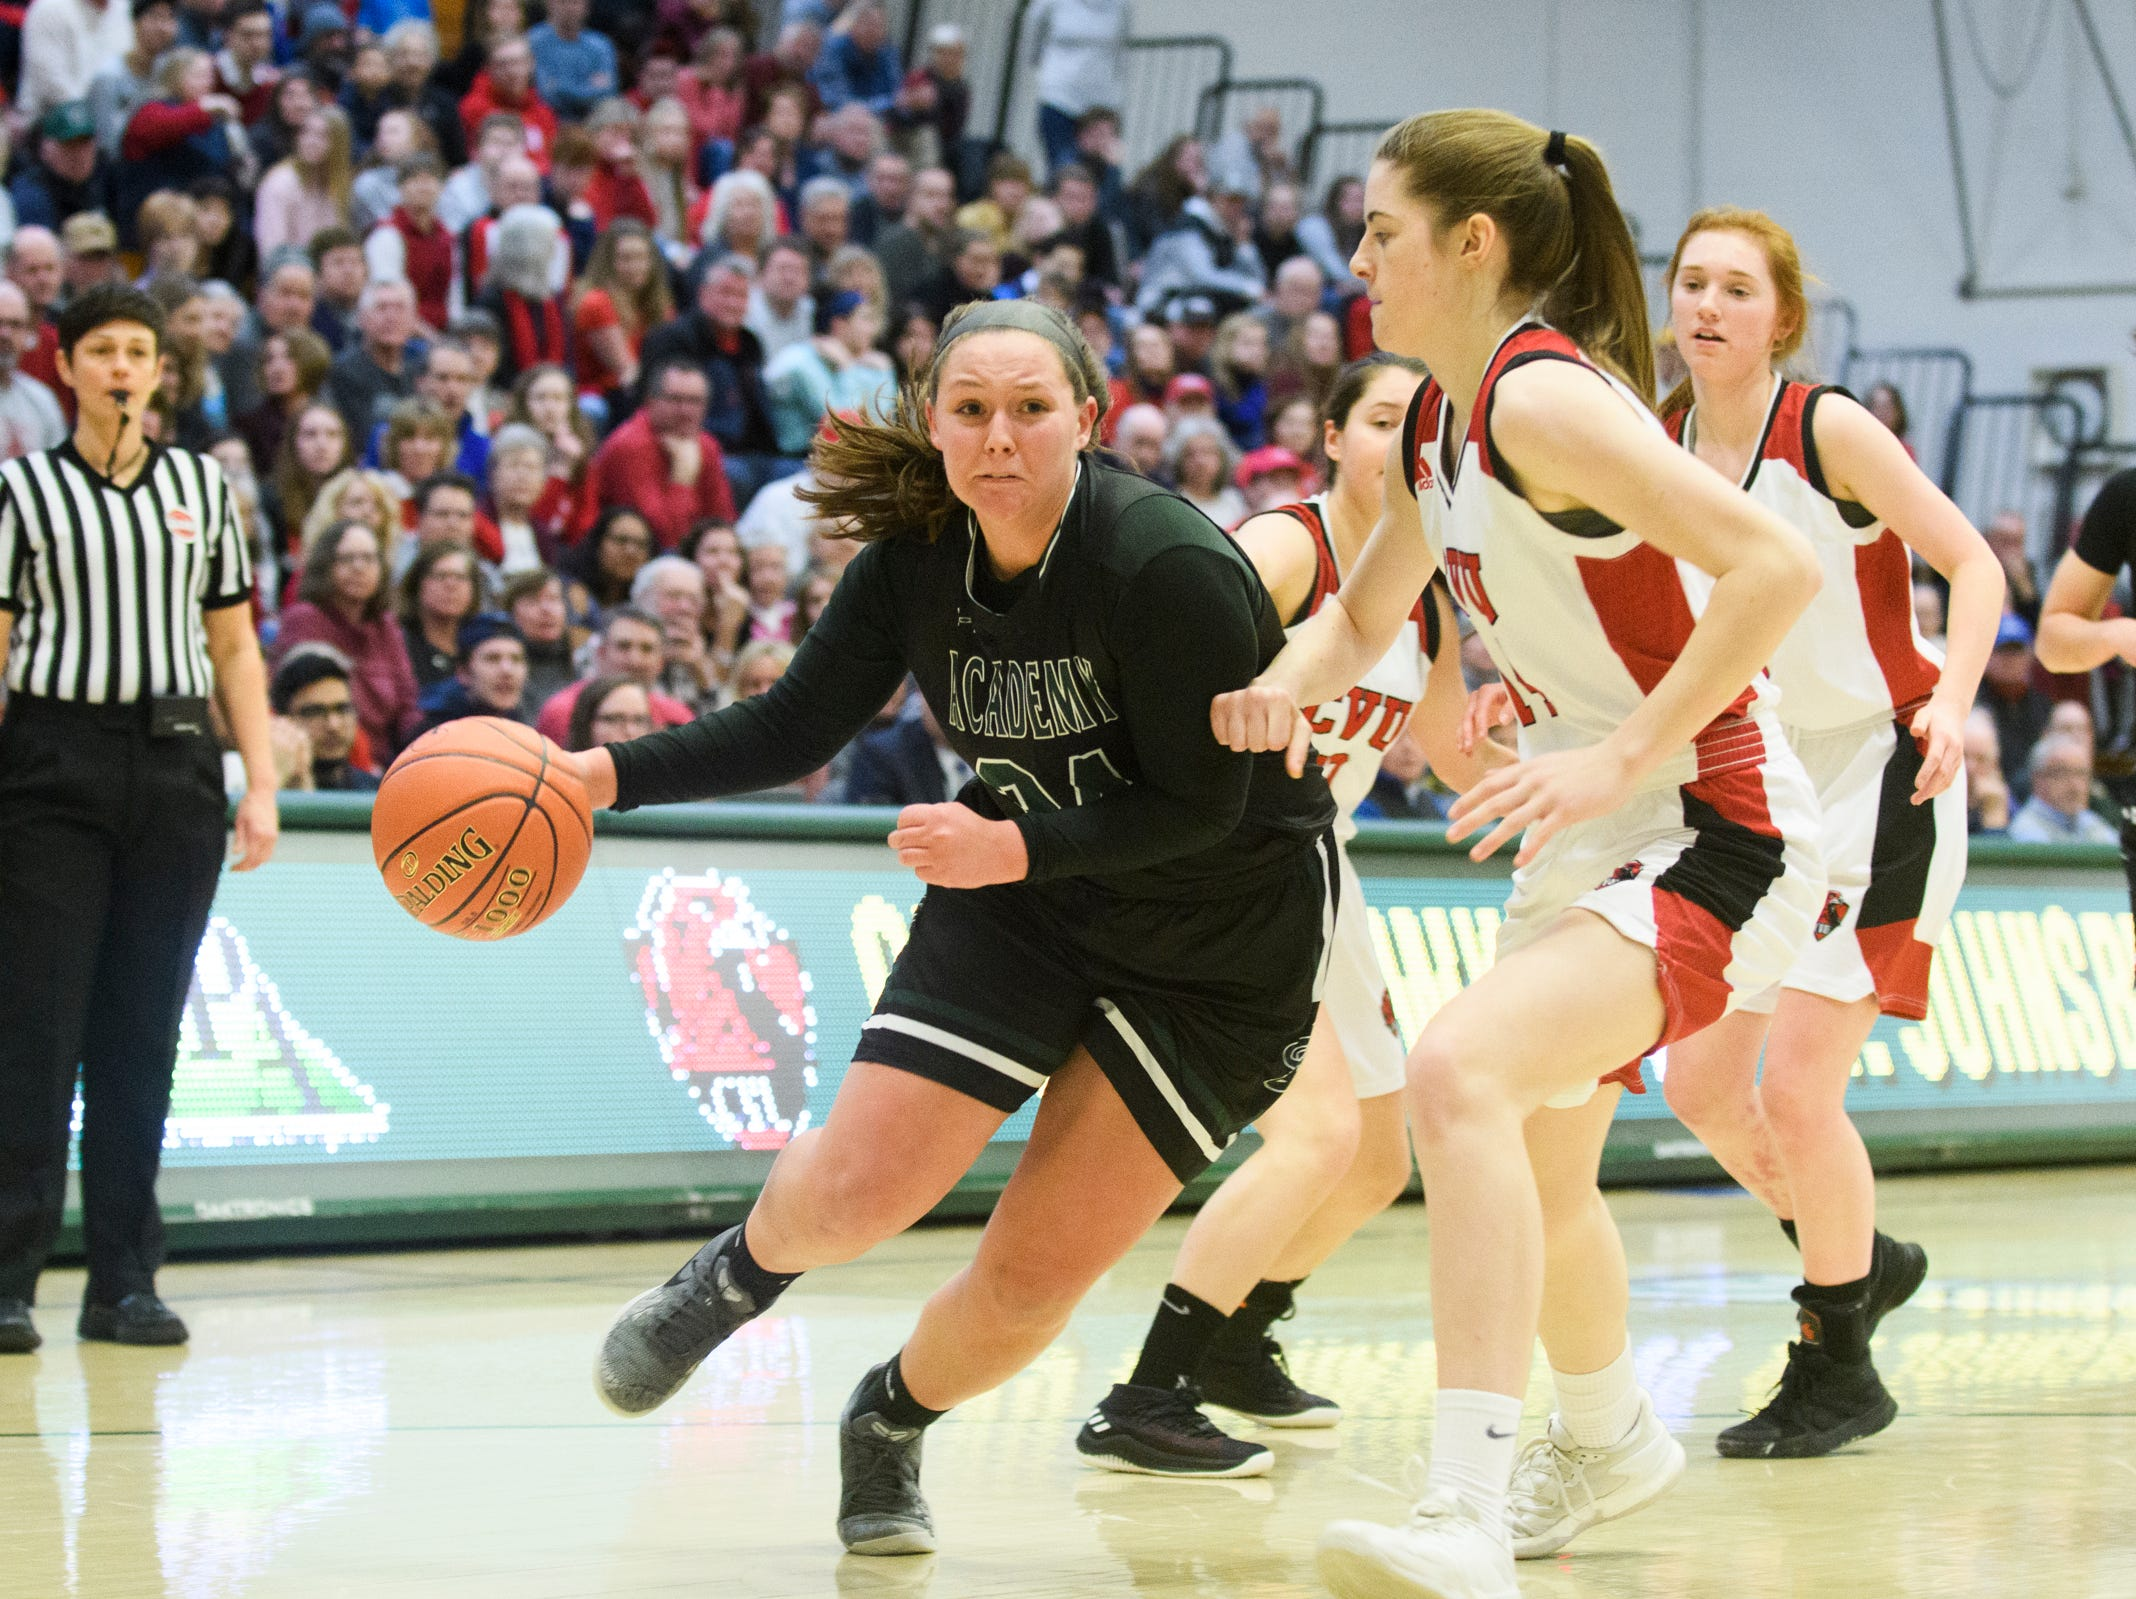 St. Johnsbury's Josie Choiniere (24) drives to the hoop past CVU's Julia Balance (14) during the division I girls basketball championship basketball game between the St. Johnsbury Hilltoppers and the Champlain Valley Union Redhawks at Patrick Gym on Sunday afternoon March 10, 2019 in Burlington, Vermont.